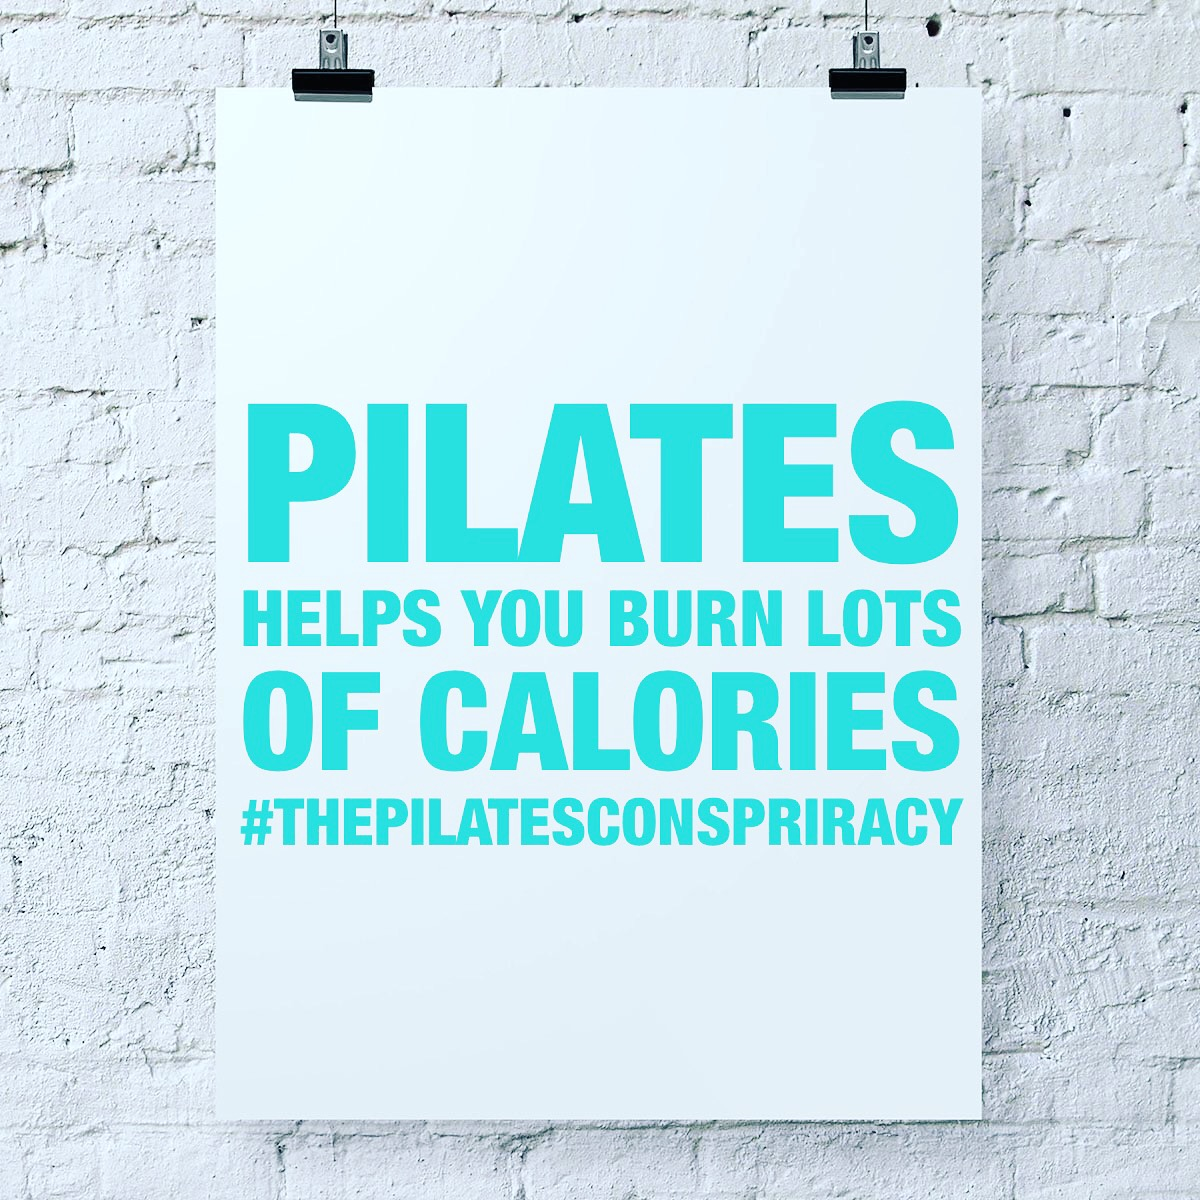 Pilates helps you burn lots of calories